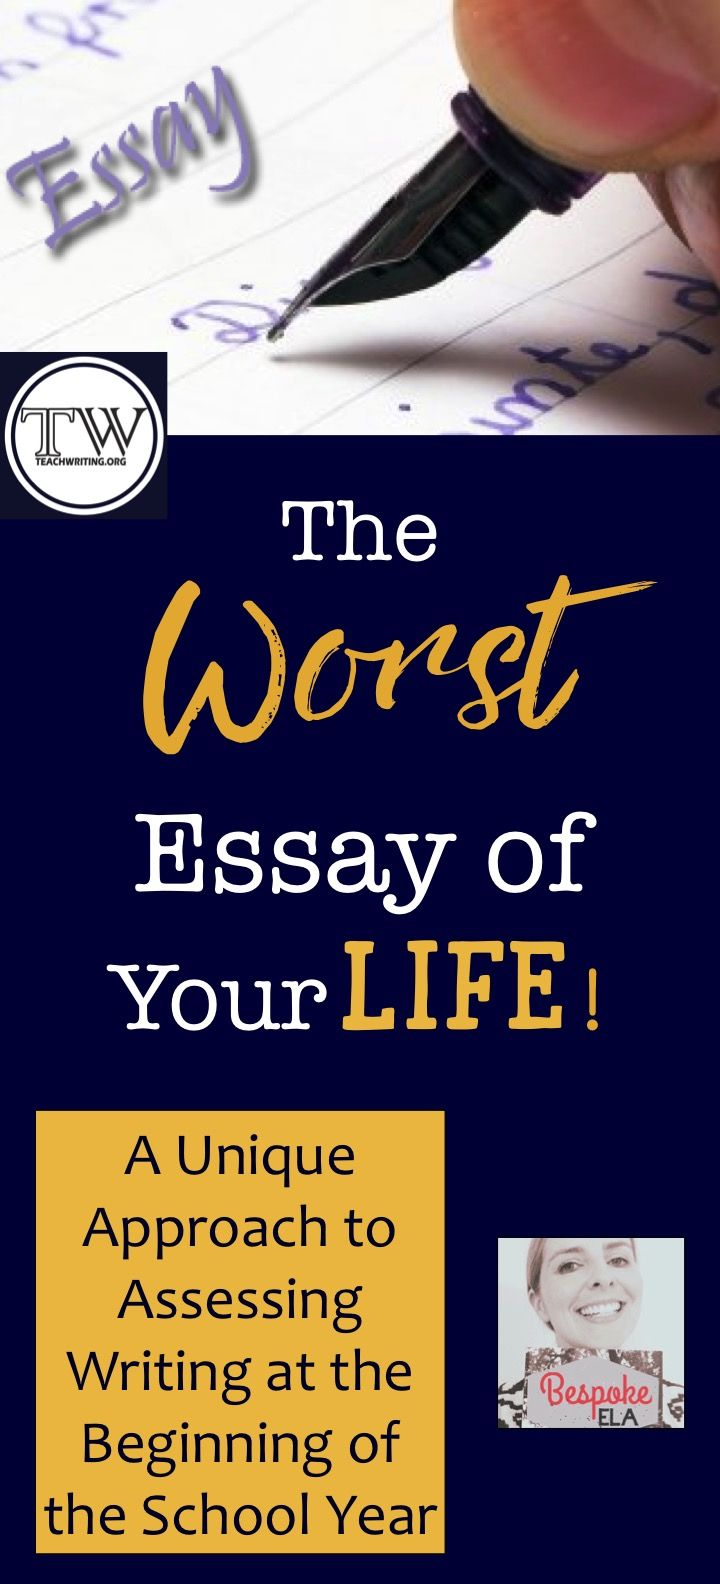 life lessons for college essays Unlike most editing & proofreading services, we edit for everything: grammar, spelling, punctuation, idea flow, sentence structure, & more get started now.